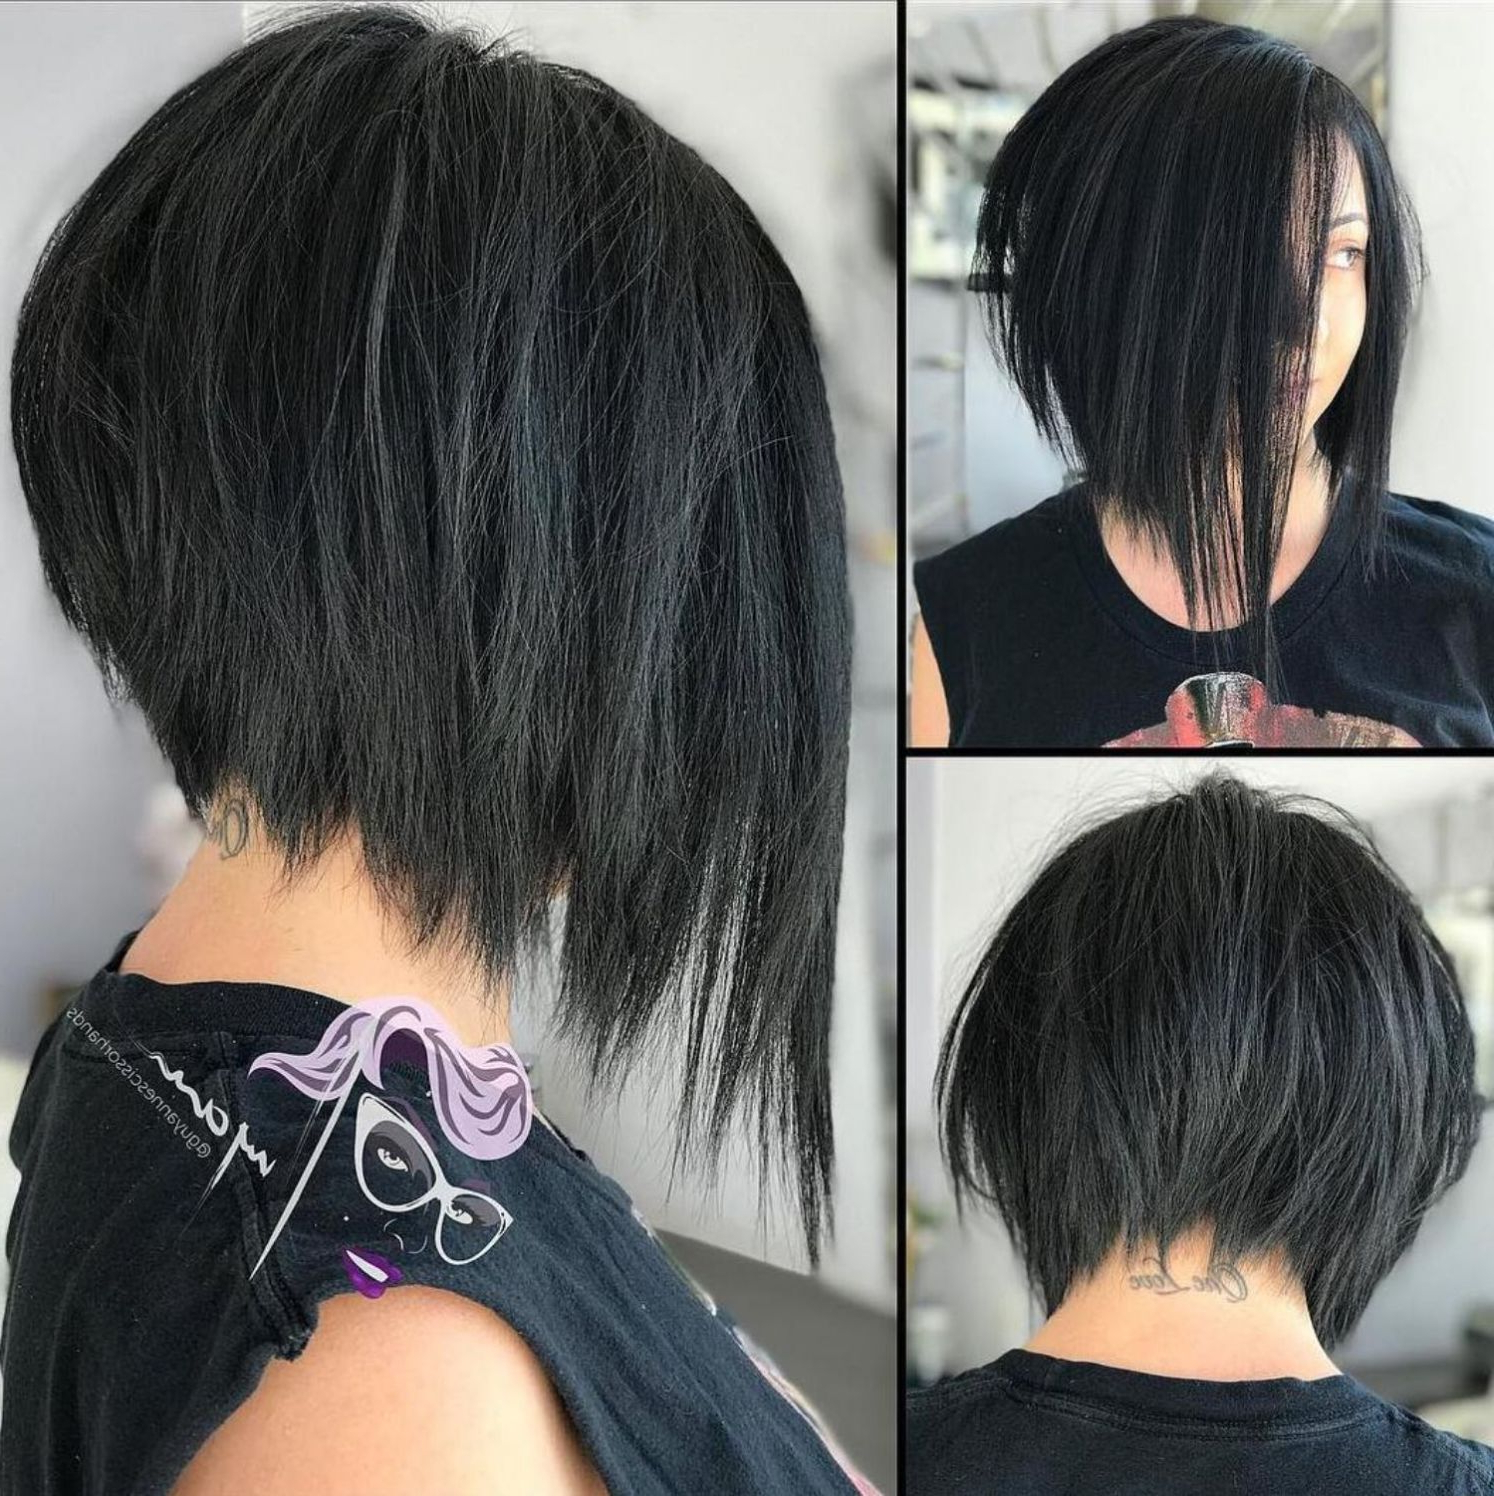 Well Known Razored Gray Bob Hairstyles With Bangs In 50 Trendy Inverted Bob Haircuts In (View 20 of 20)